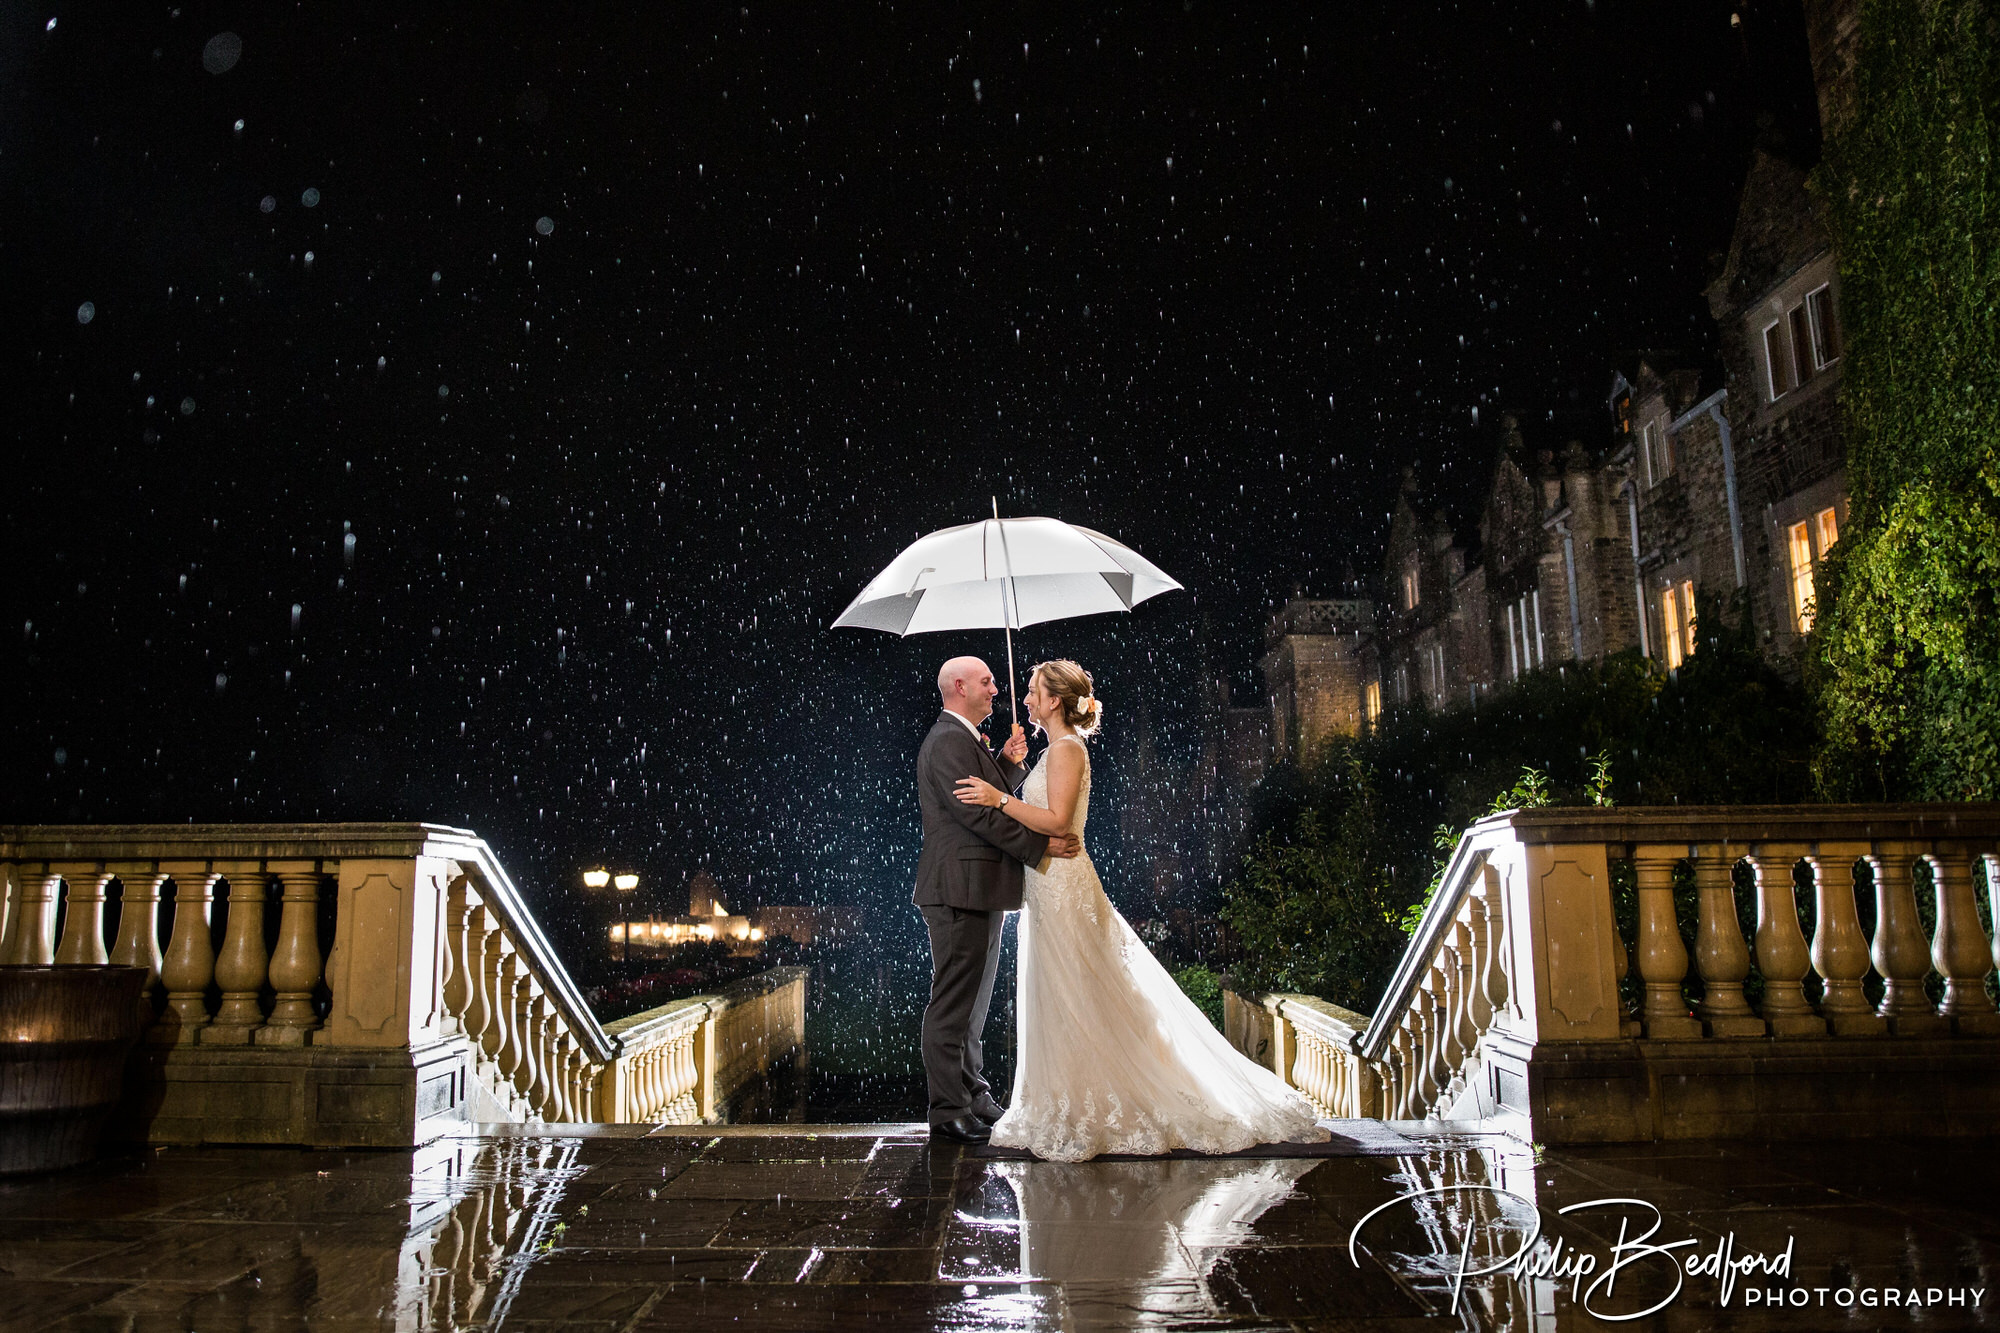 Reportage Wedding photograph of Bride & Groom in the rain